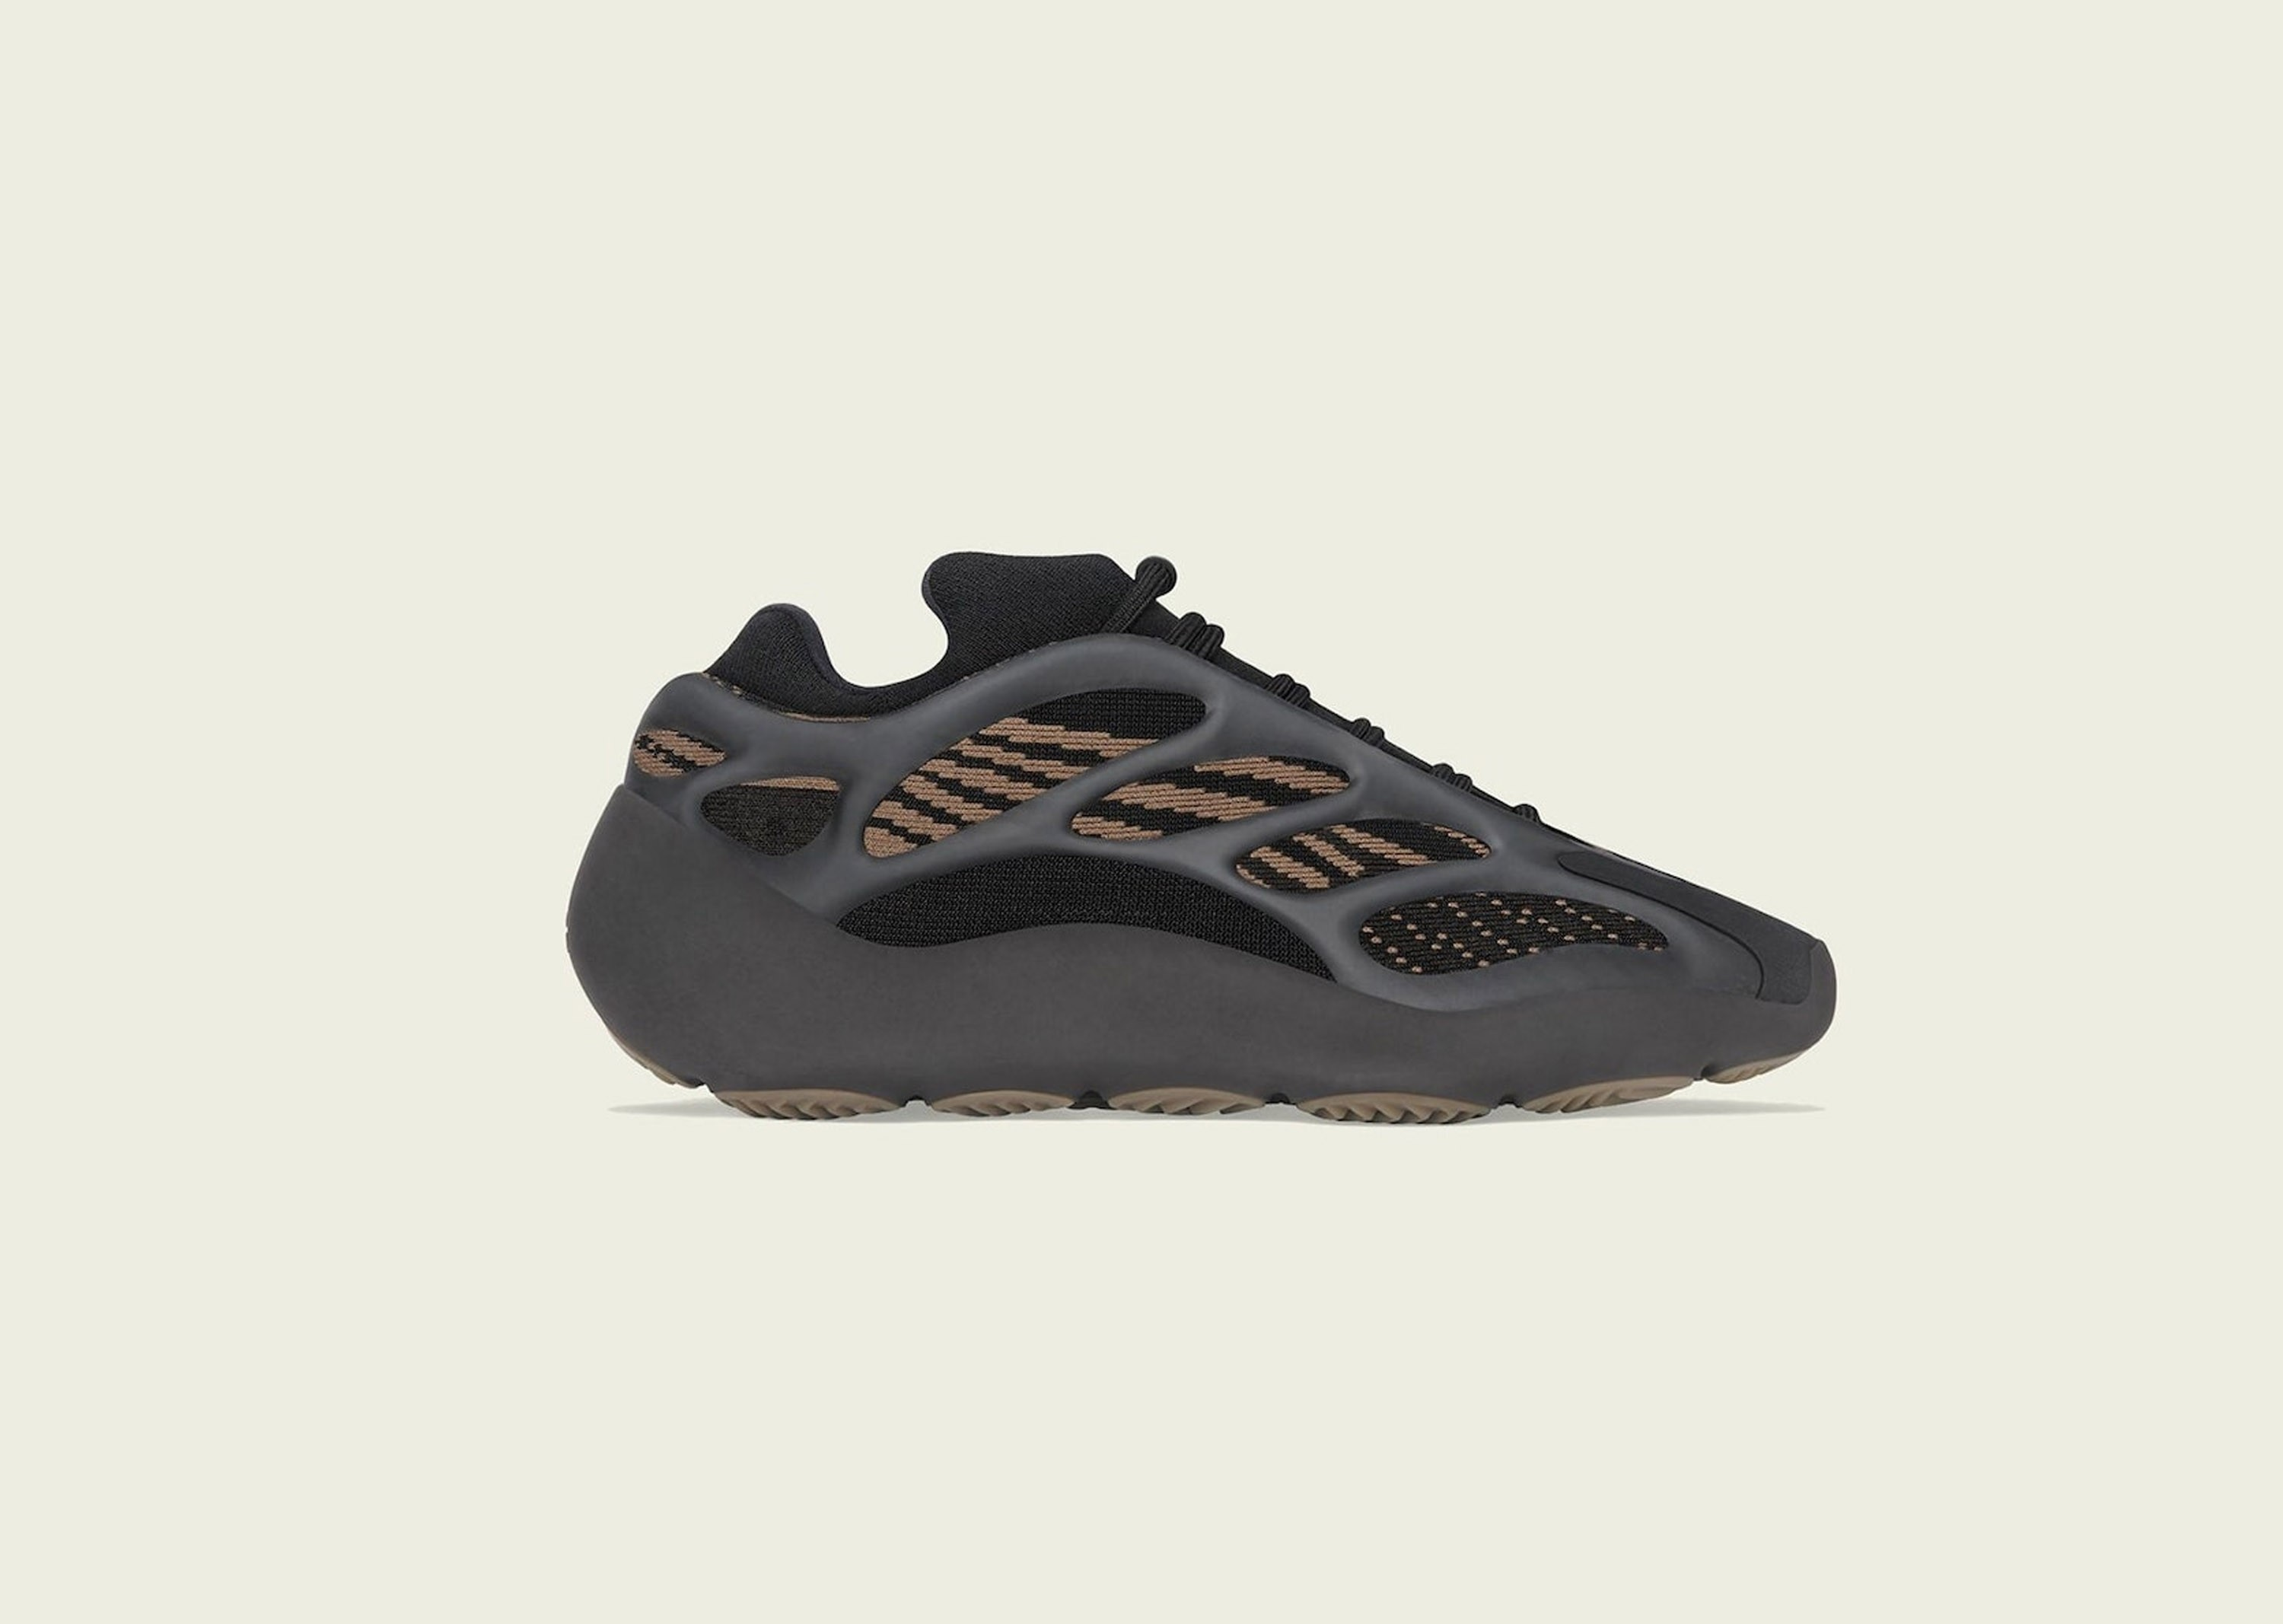 YEEZY_V3_CLAYBROWN__0003_Layer 1